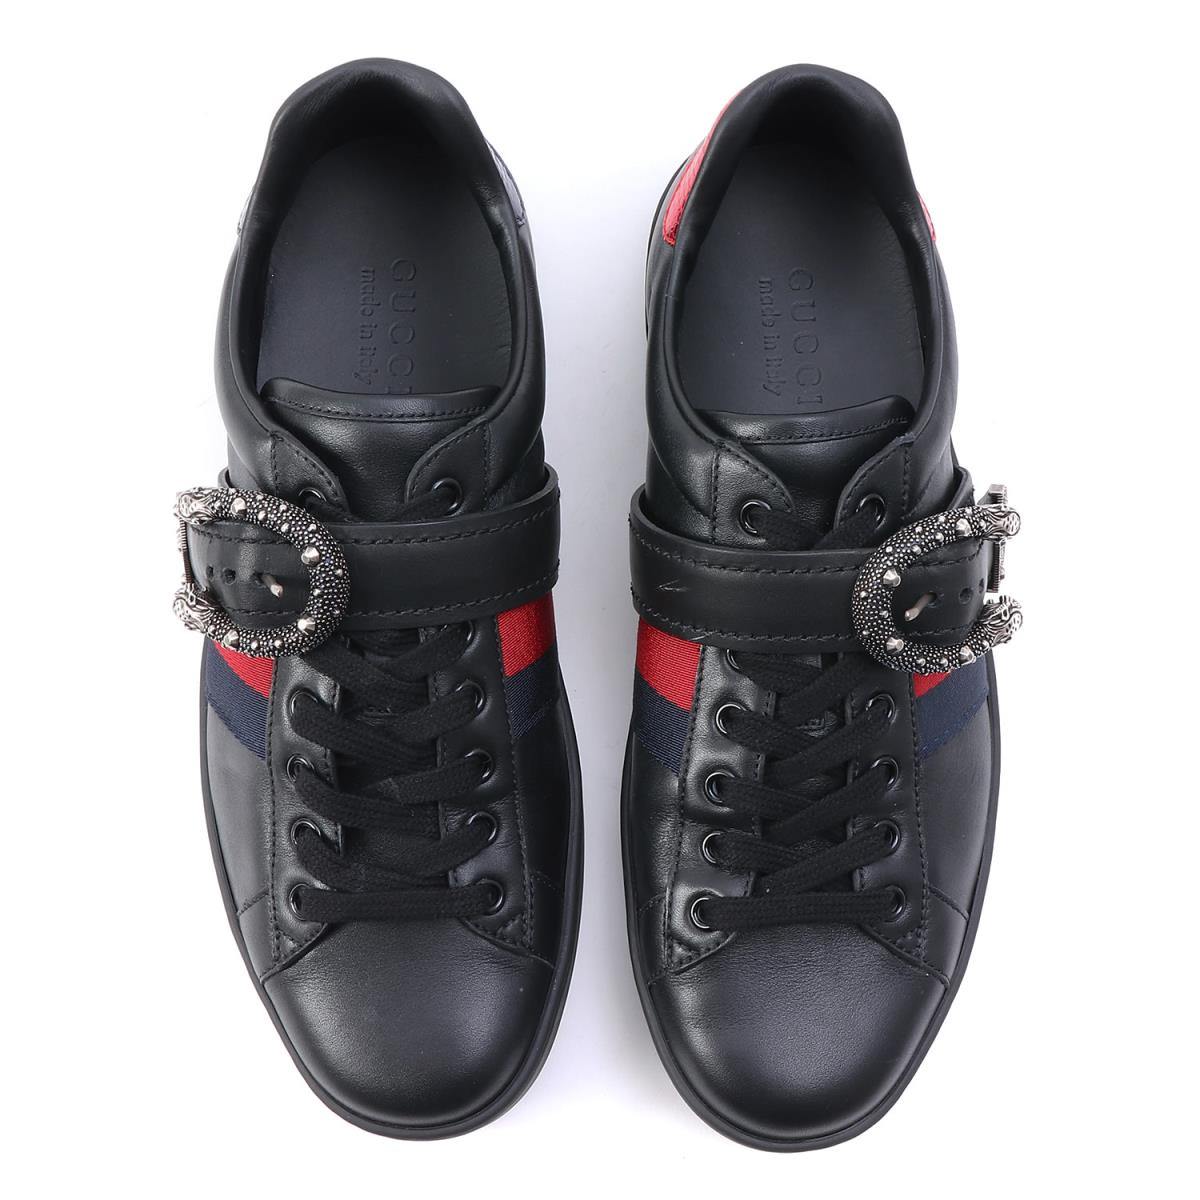 42828d7436193 Sherry line leather sneakers (Ace sneaker with Dionysus buckle) black 8  with the GUCCI (Gucci) 17A W belt